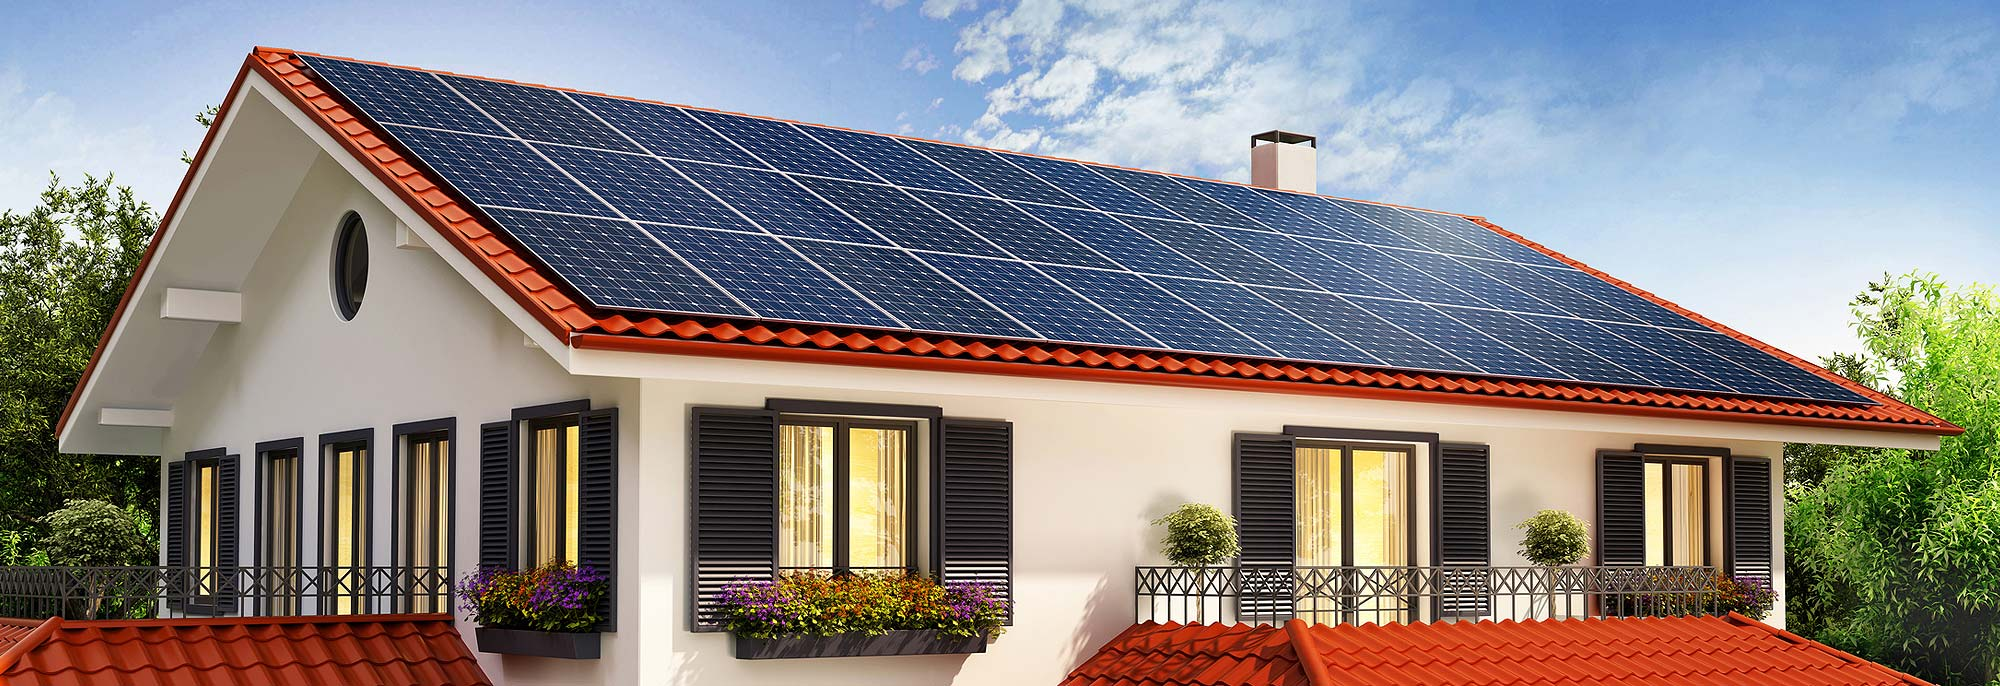 Benefits of using a commercial solar system Brisbane and new way to save money